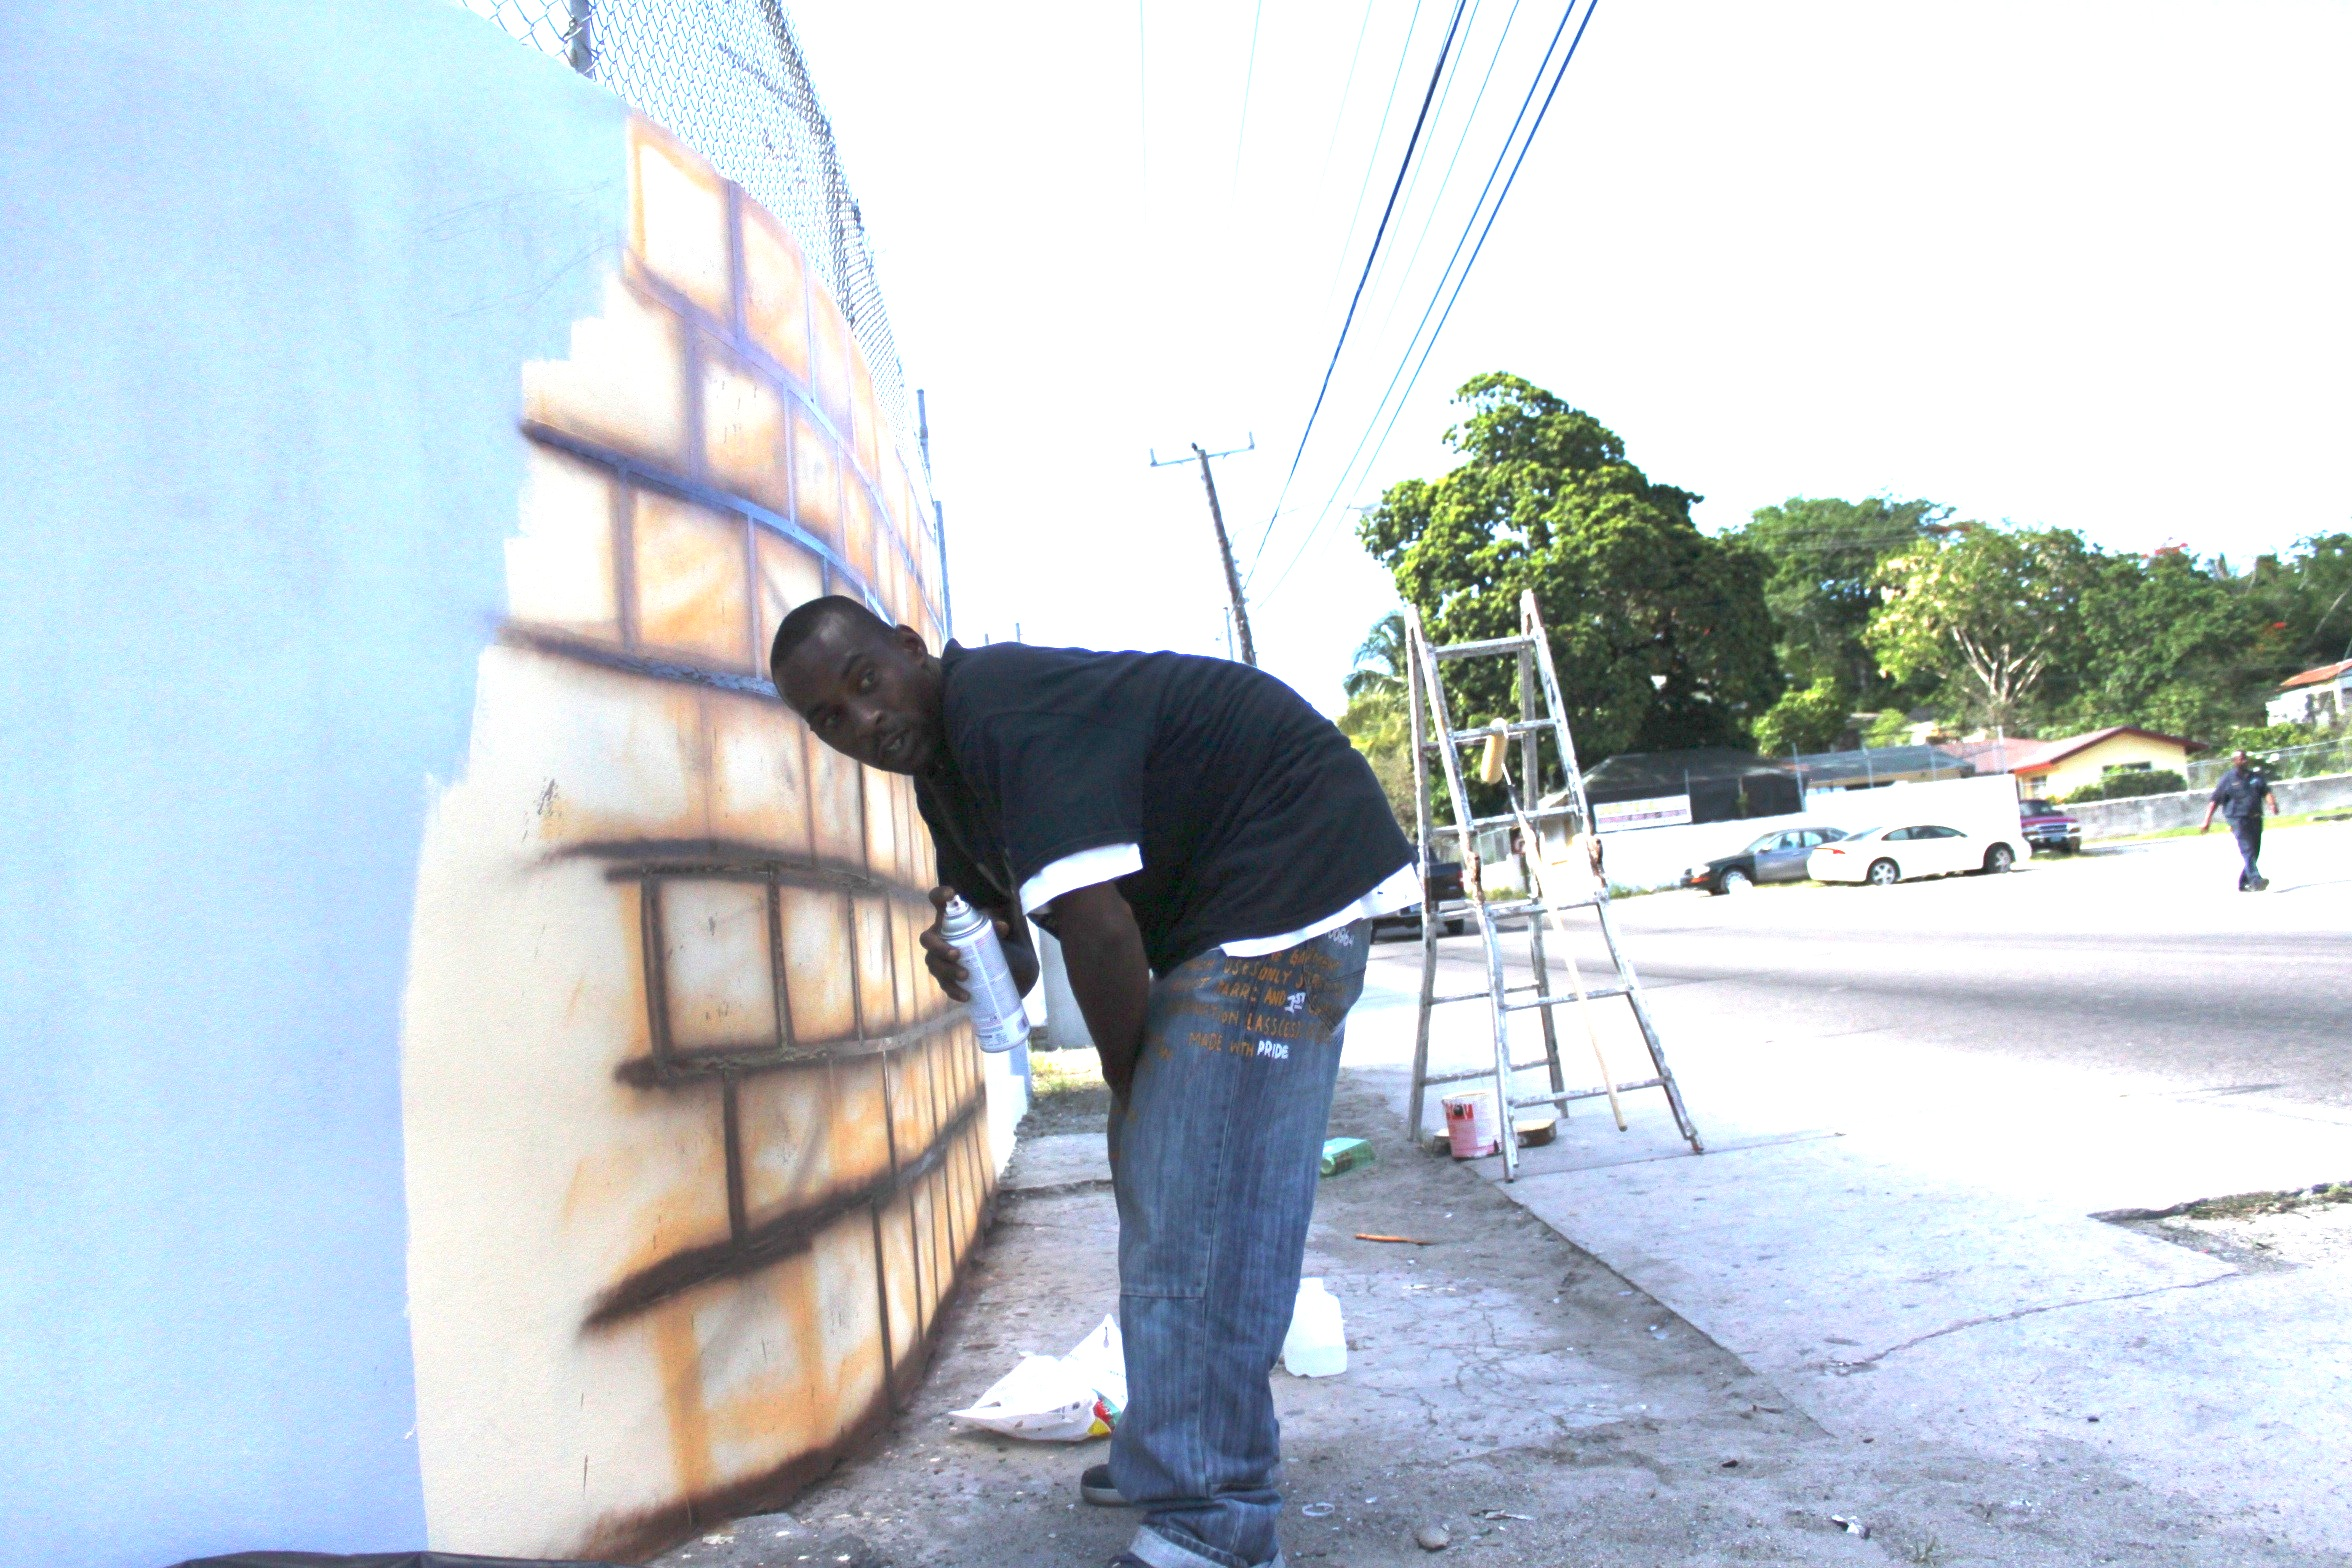 """Slime working on the """"Wall of Respect,"""" East Street and Lewis Street, 2015. All images provided by Amanda Coulson."""